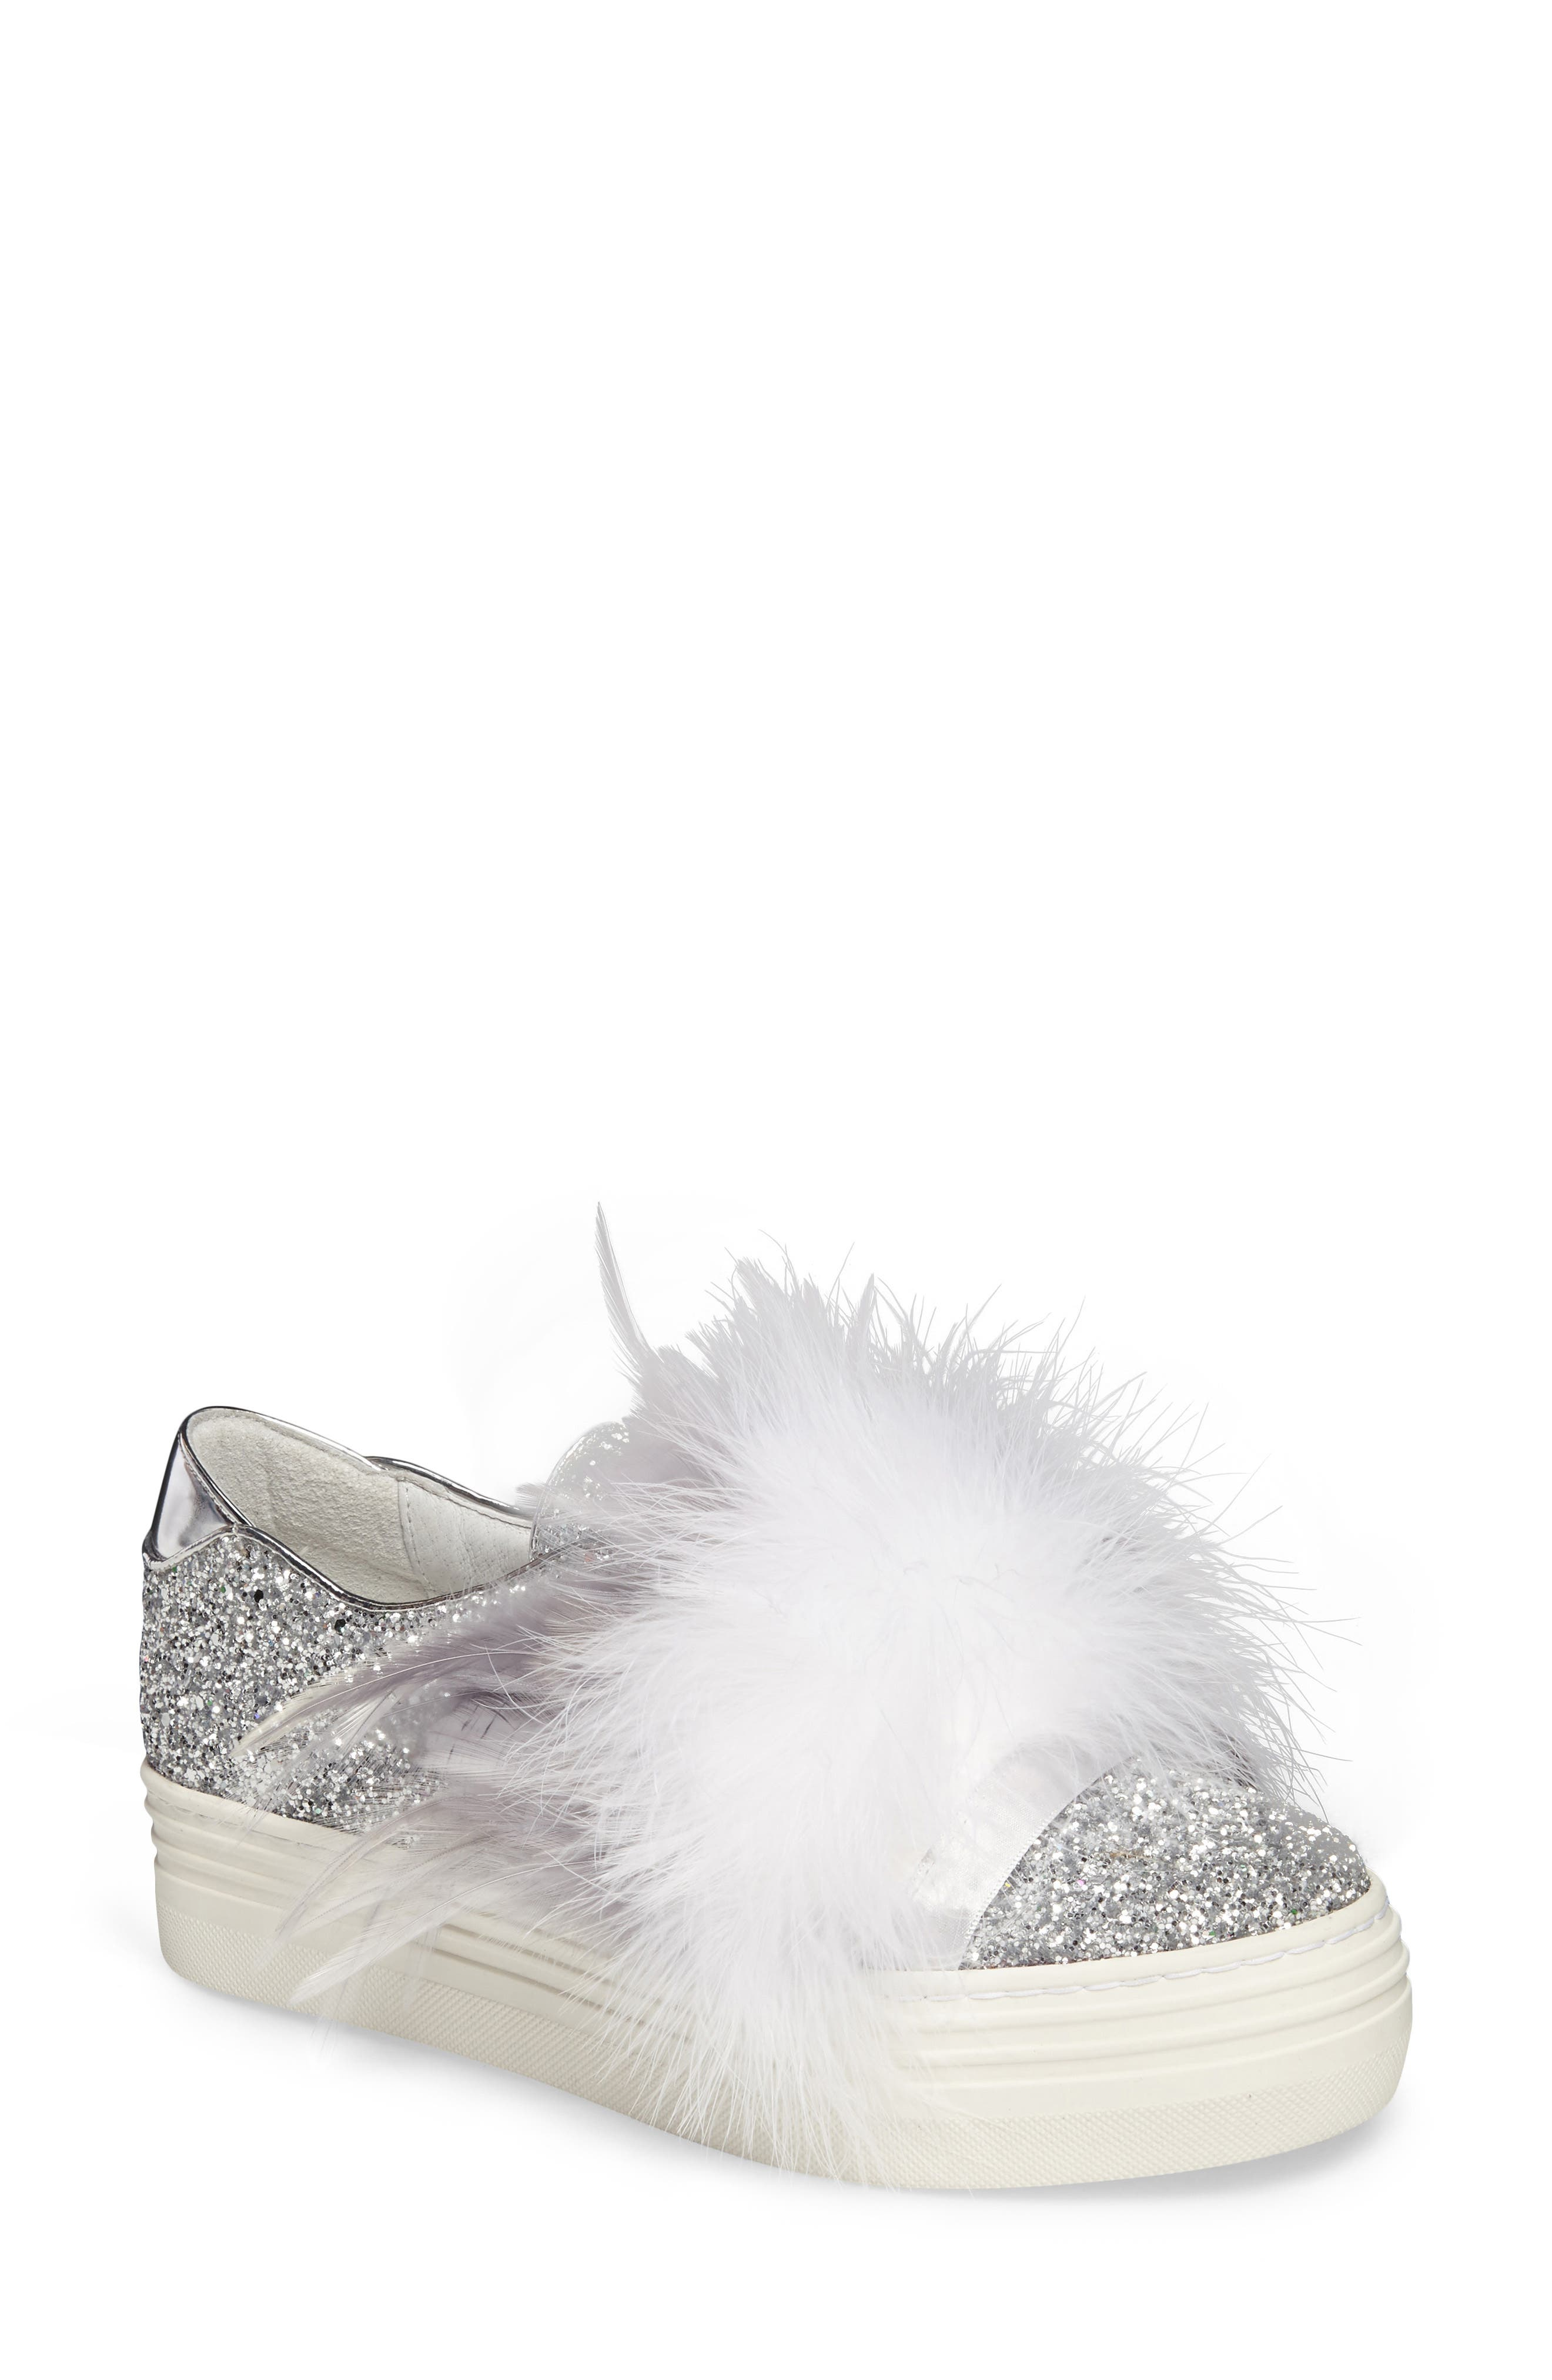 Kate Feathered Slip-On Sneaker,                         Main,                         color, Grey Feather Silver Glitter